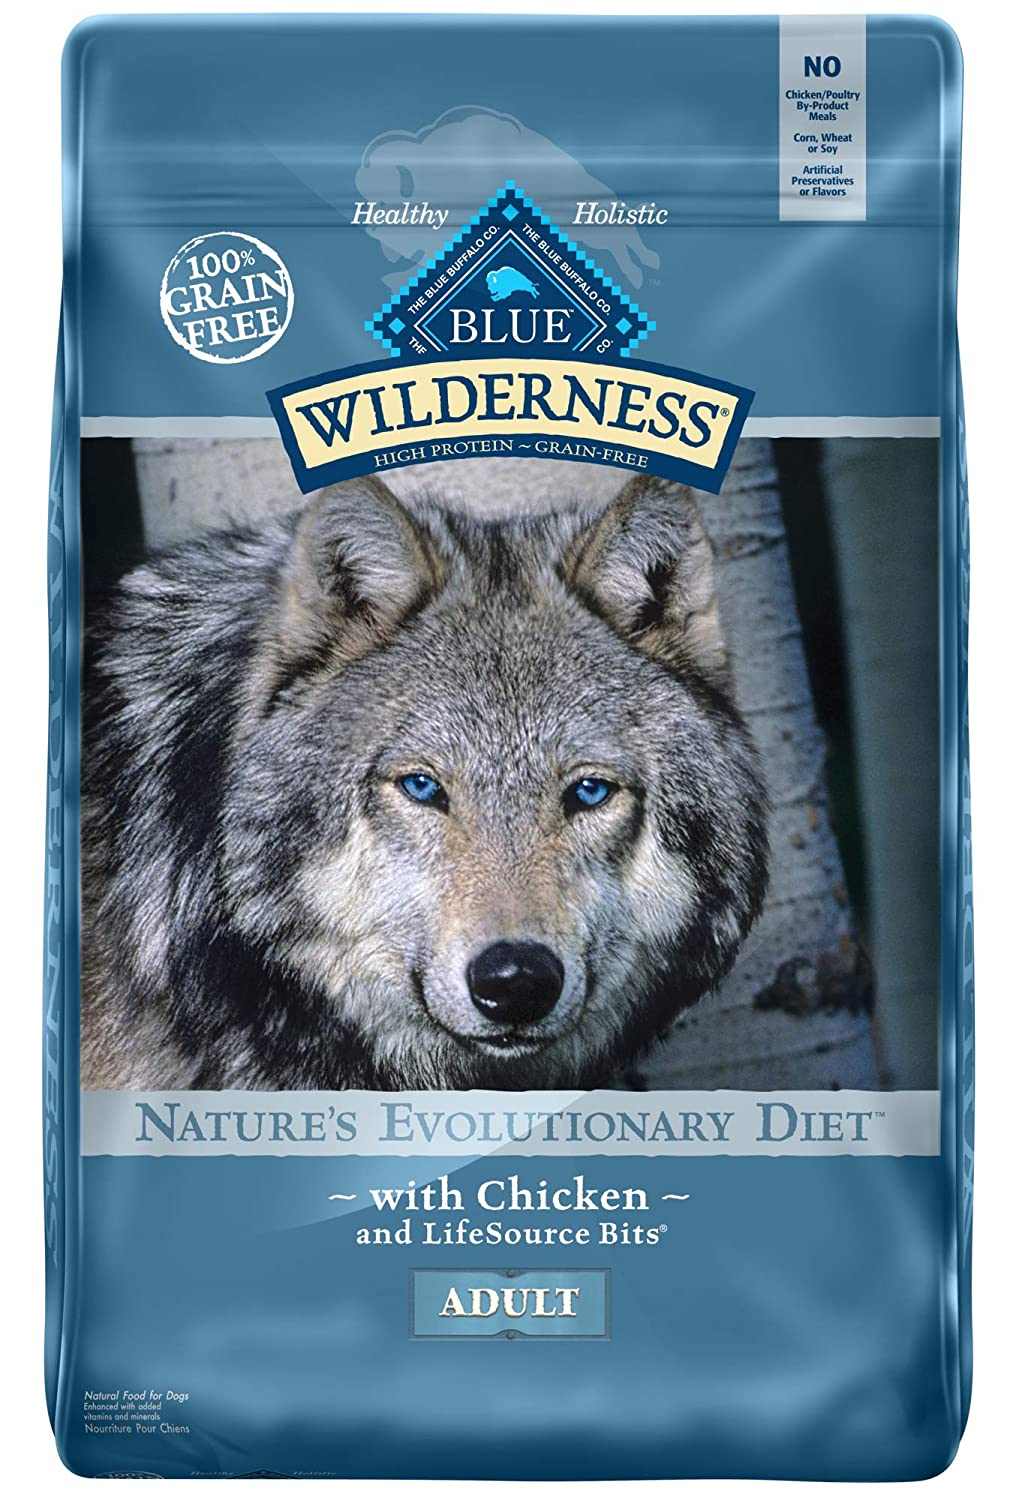 4.Blue Buffalo Wilderness Chicken Recipe Grain-Free Dry Dog Food